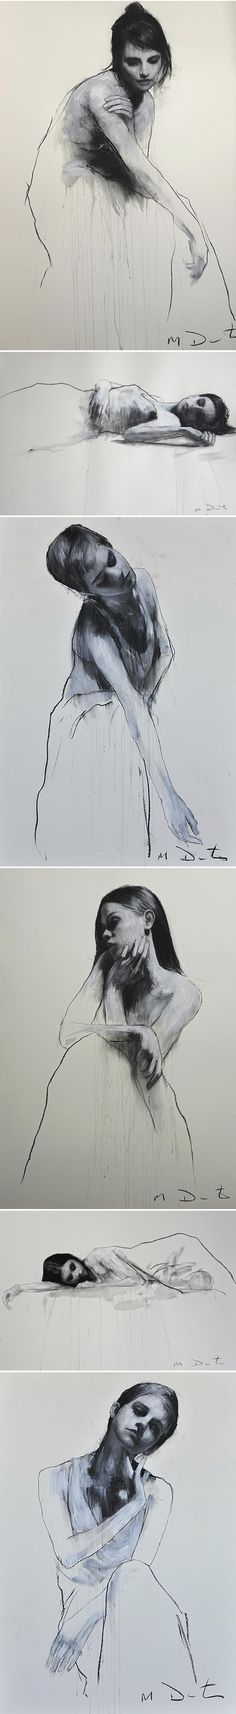 drawings by mark demsteader